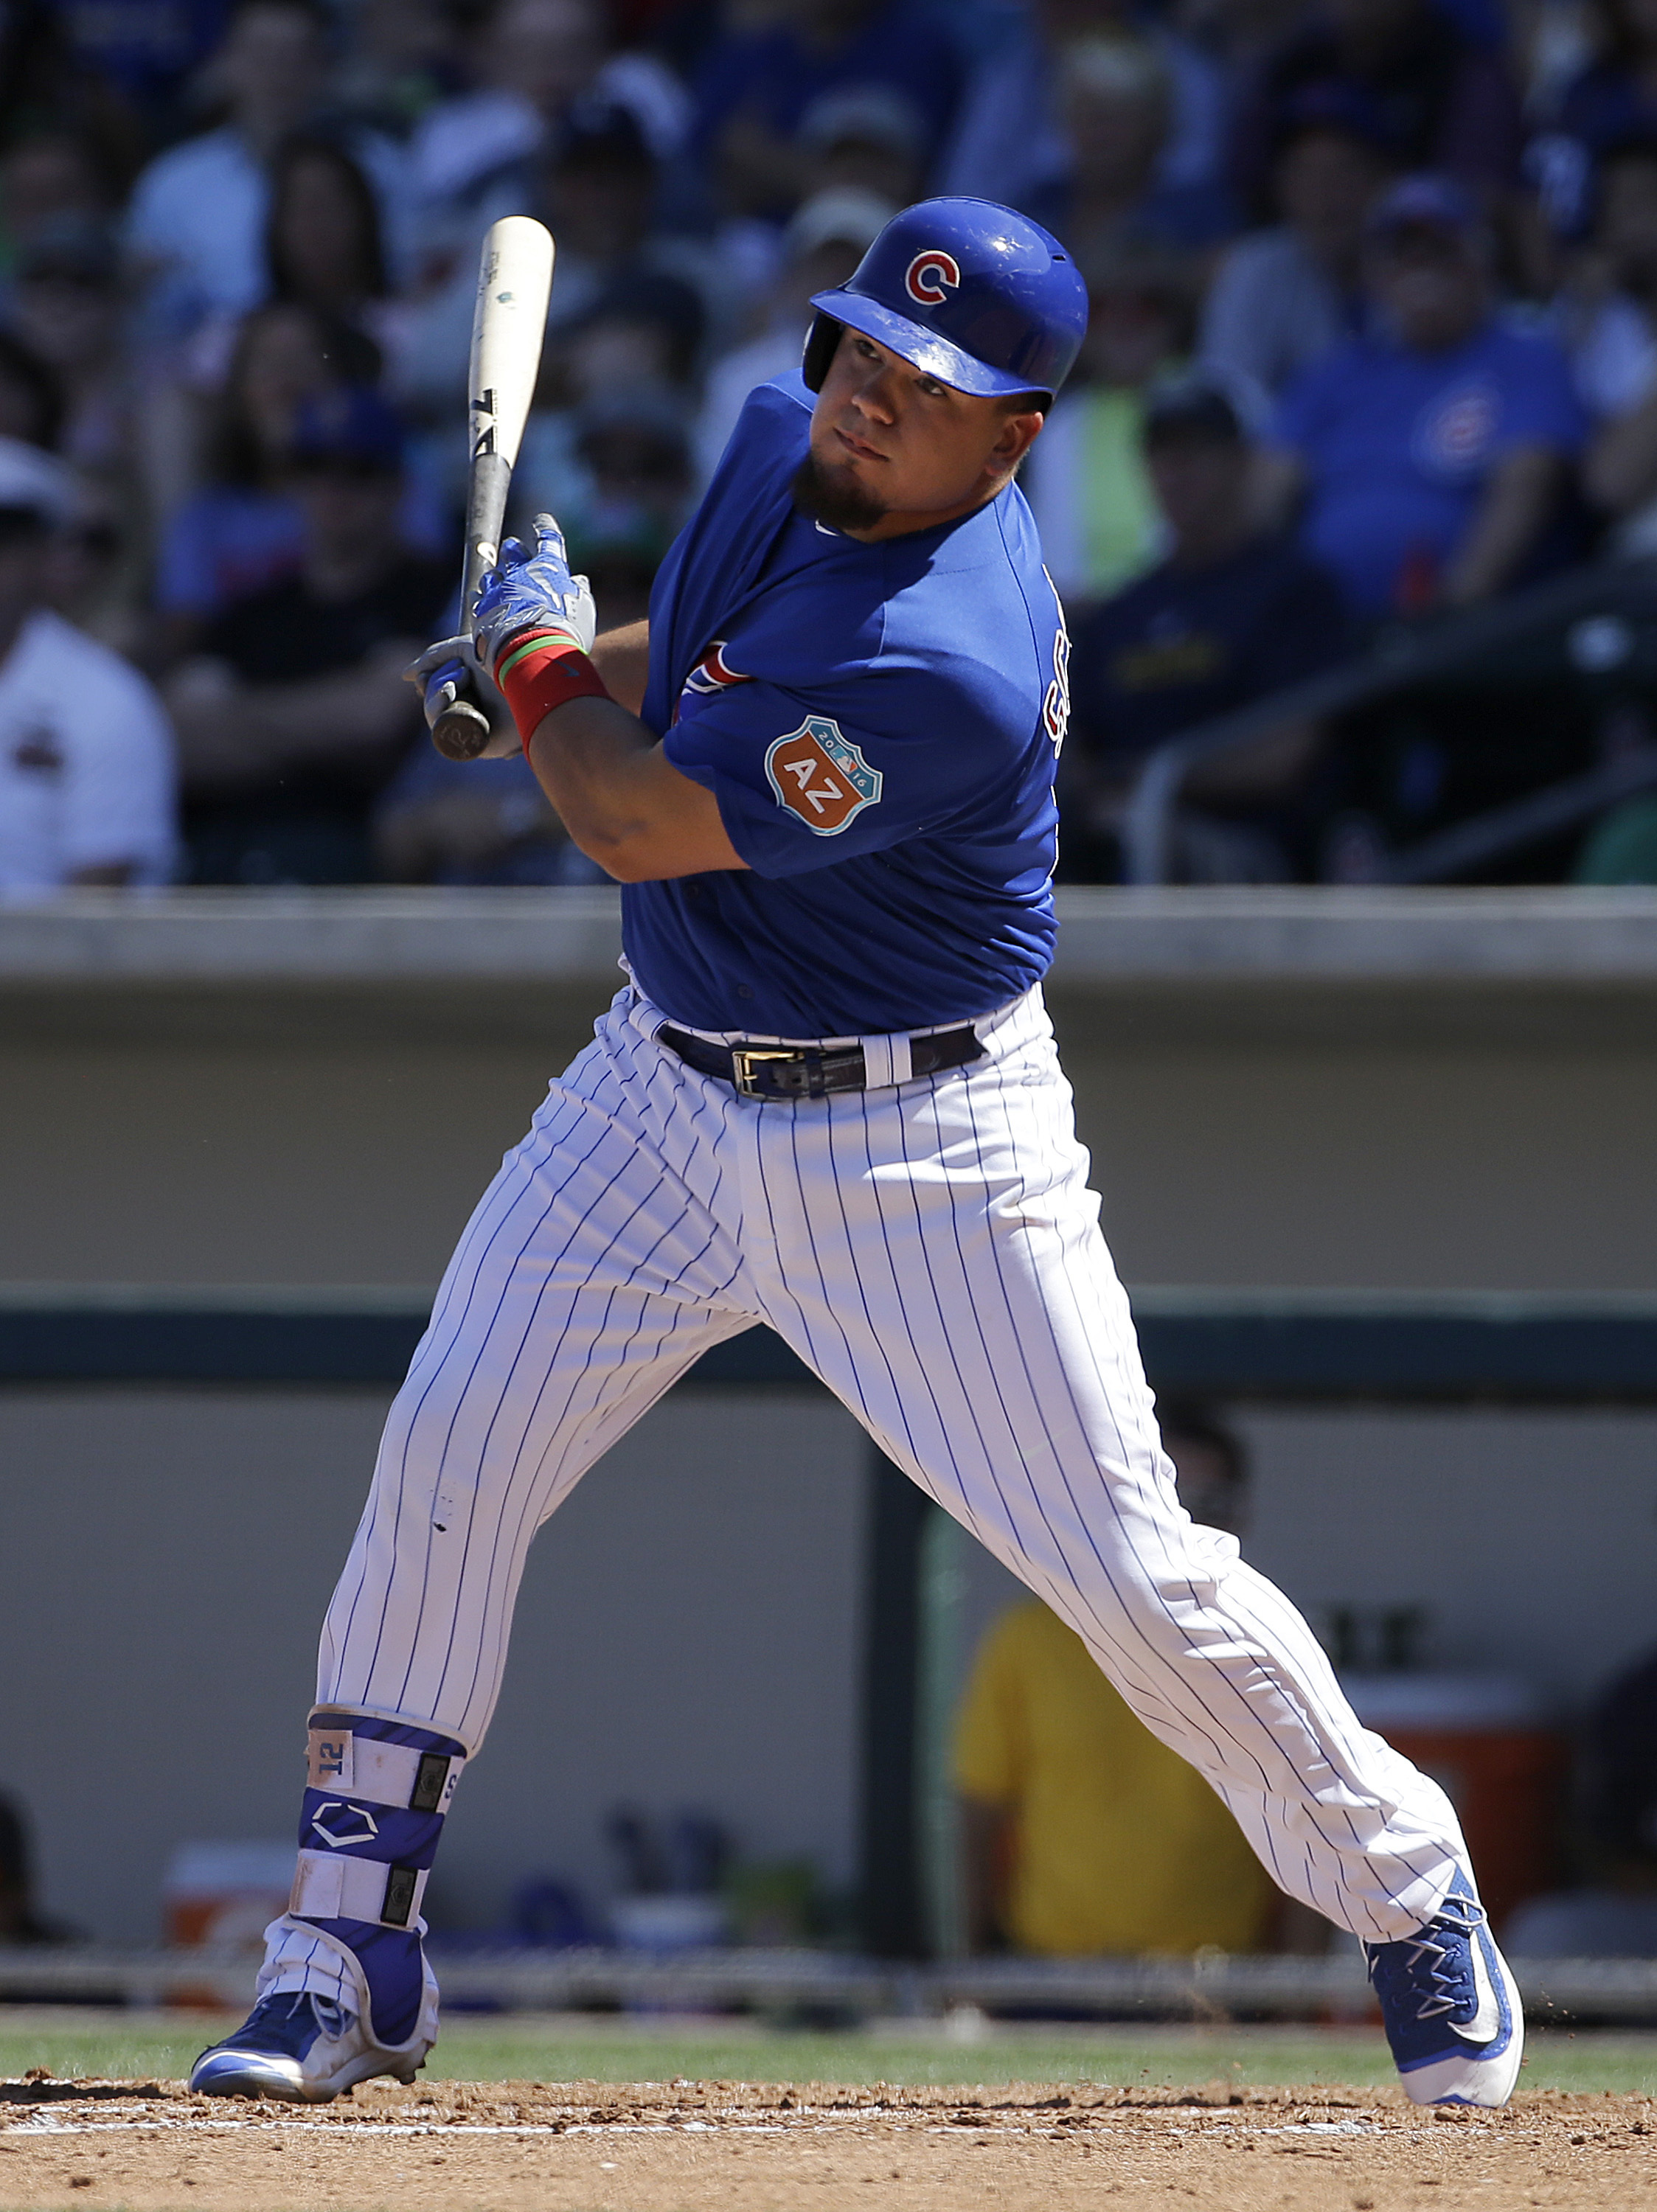 FILE - In this March 25, 2016, file photo, Chicago Cubs' Kyle Schwarber swings against the Milwaukee Brewers during a spring training baseball game in Mesa, Ariz. Right after the Cubs reached the World Series for the first time since 1945, the focus shift